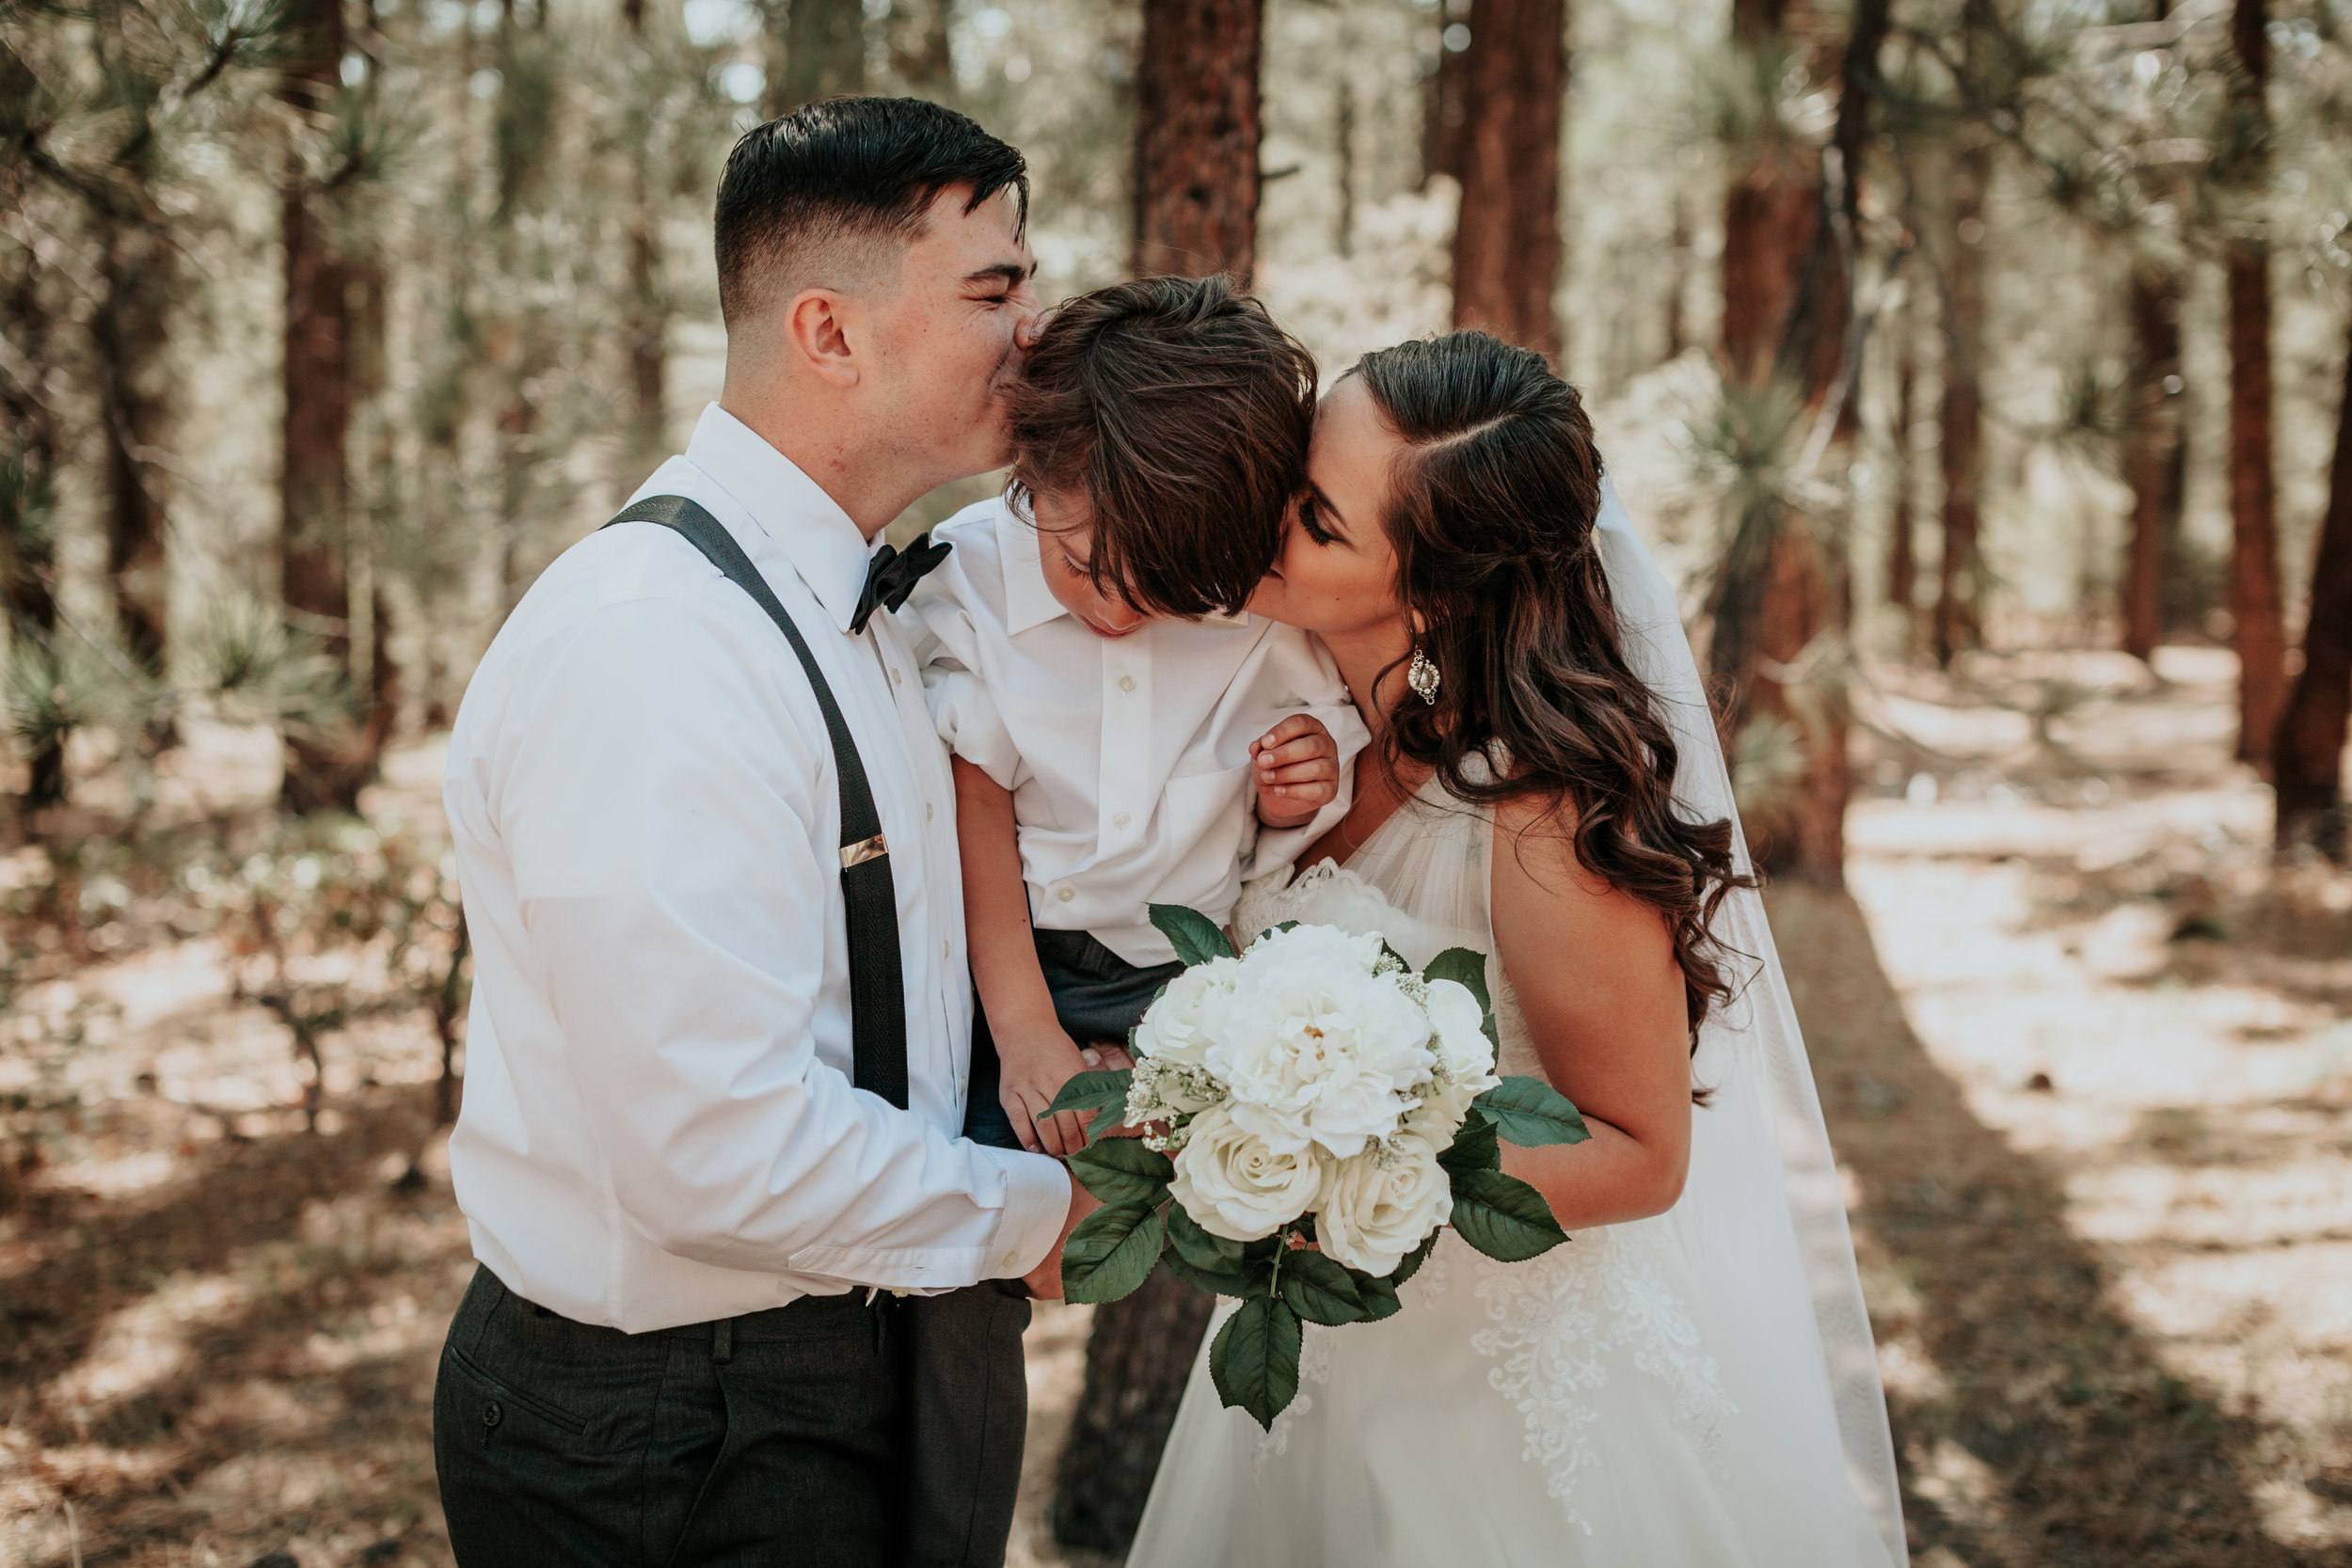 forest-wedding-big-bear-california-wedding-photographer (19).jpg